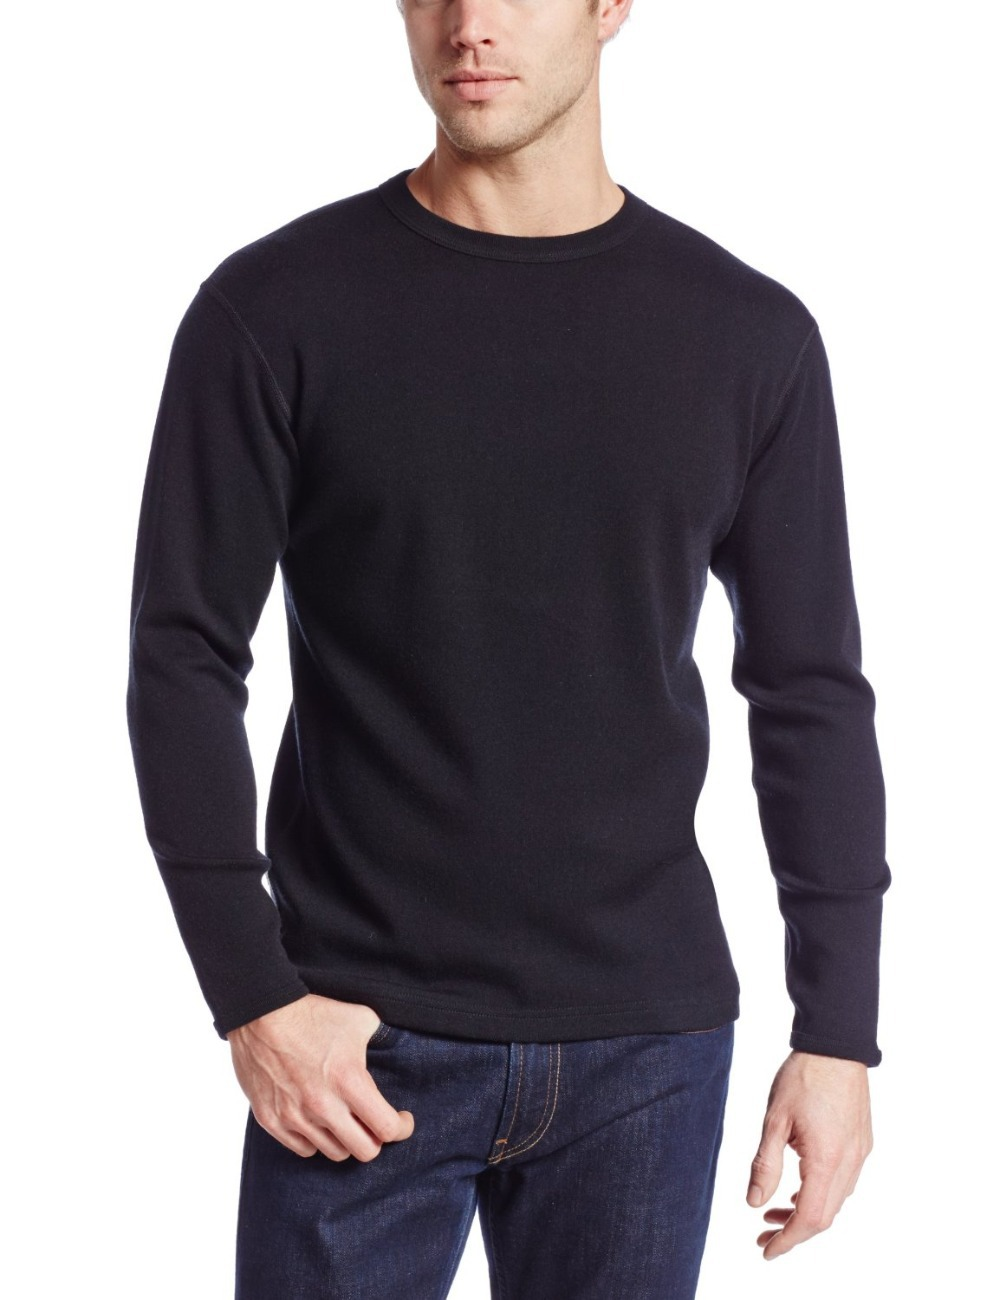 Long Sleeve Underwear Promotion-Shop for Promotional Long Sleeve ...